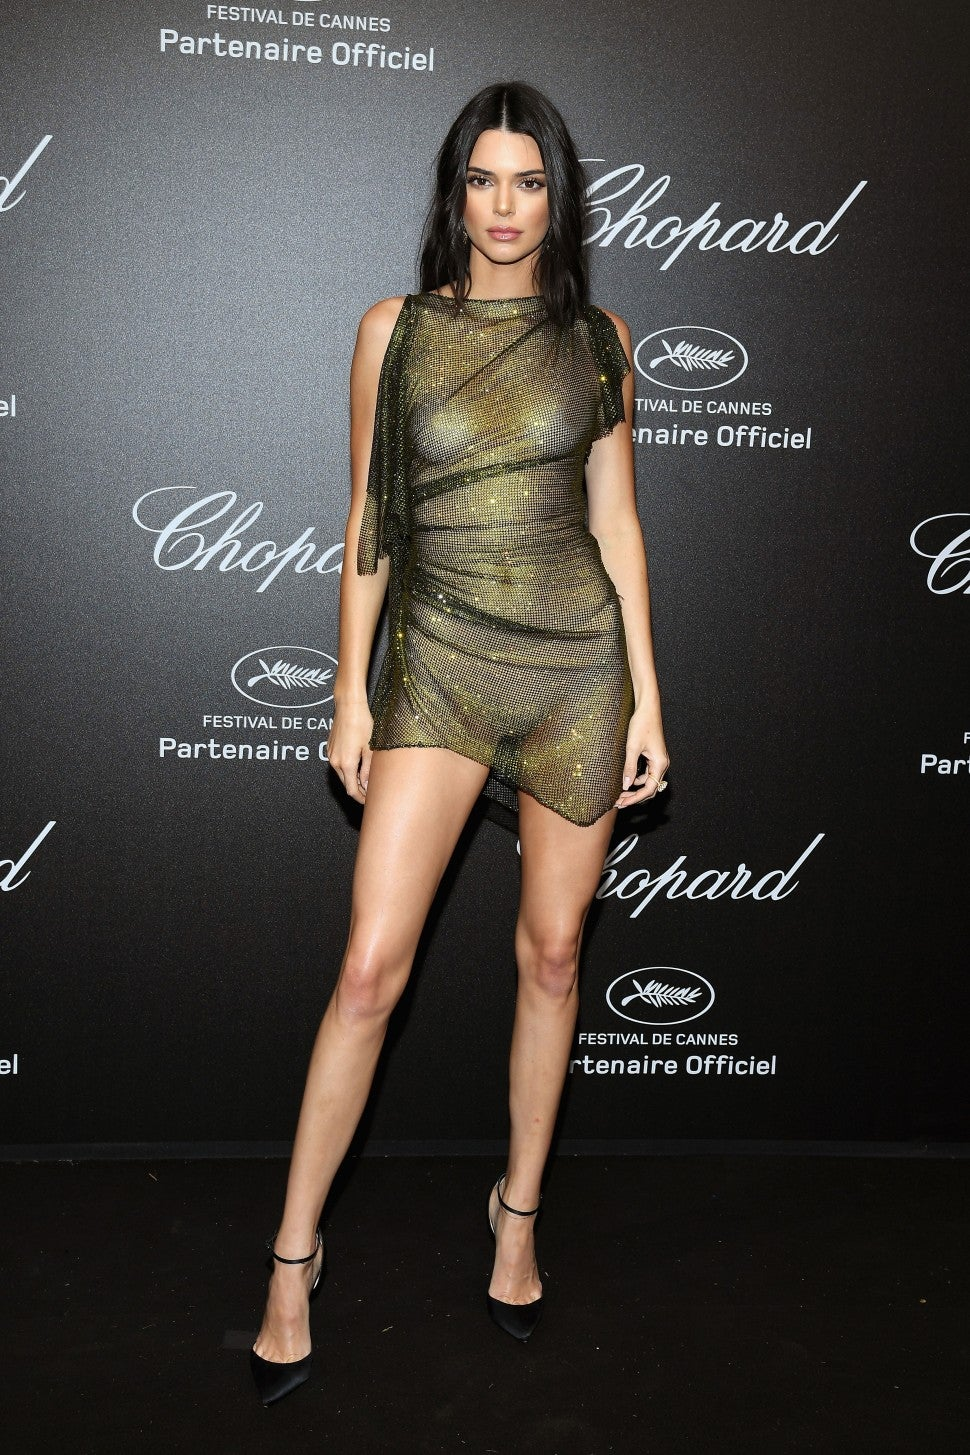 Kendall Jenner at Chopard Secret Night at Cannes